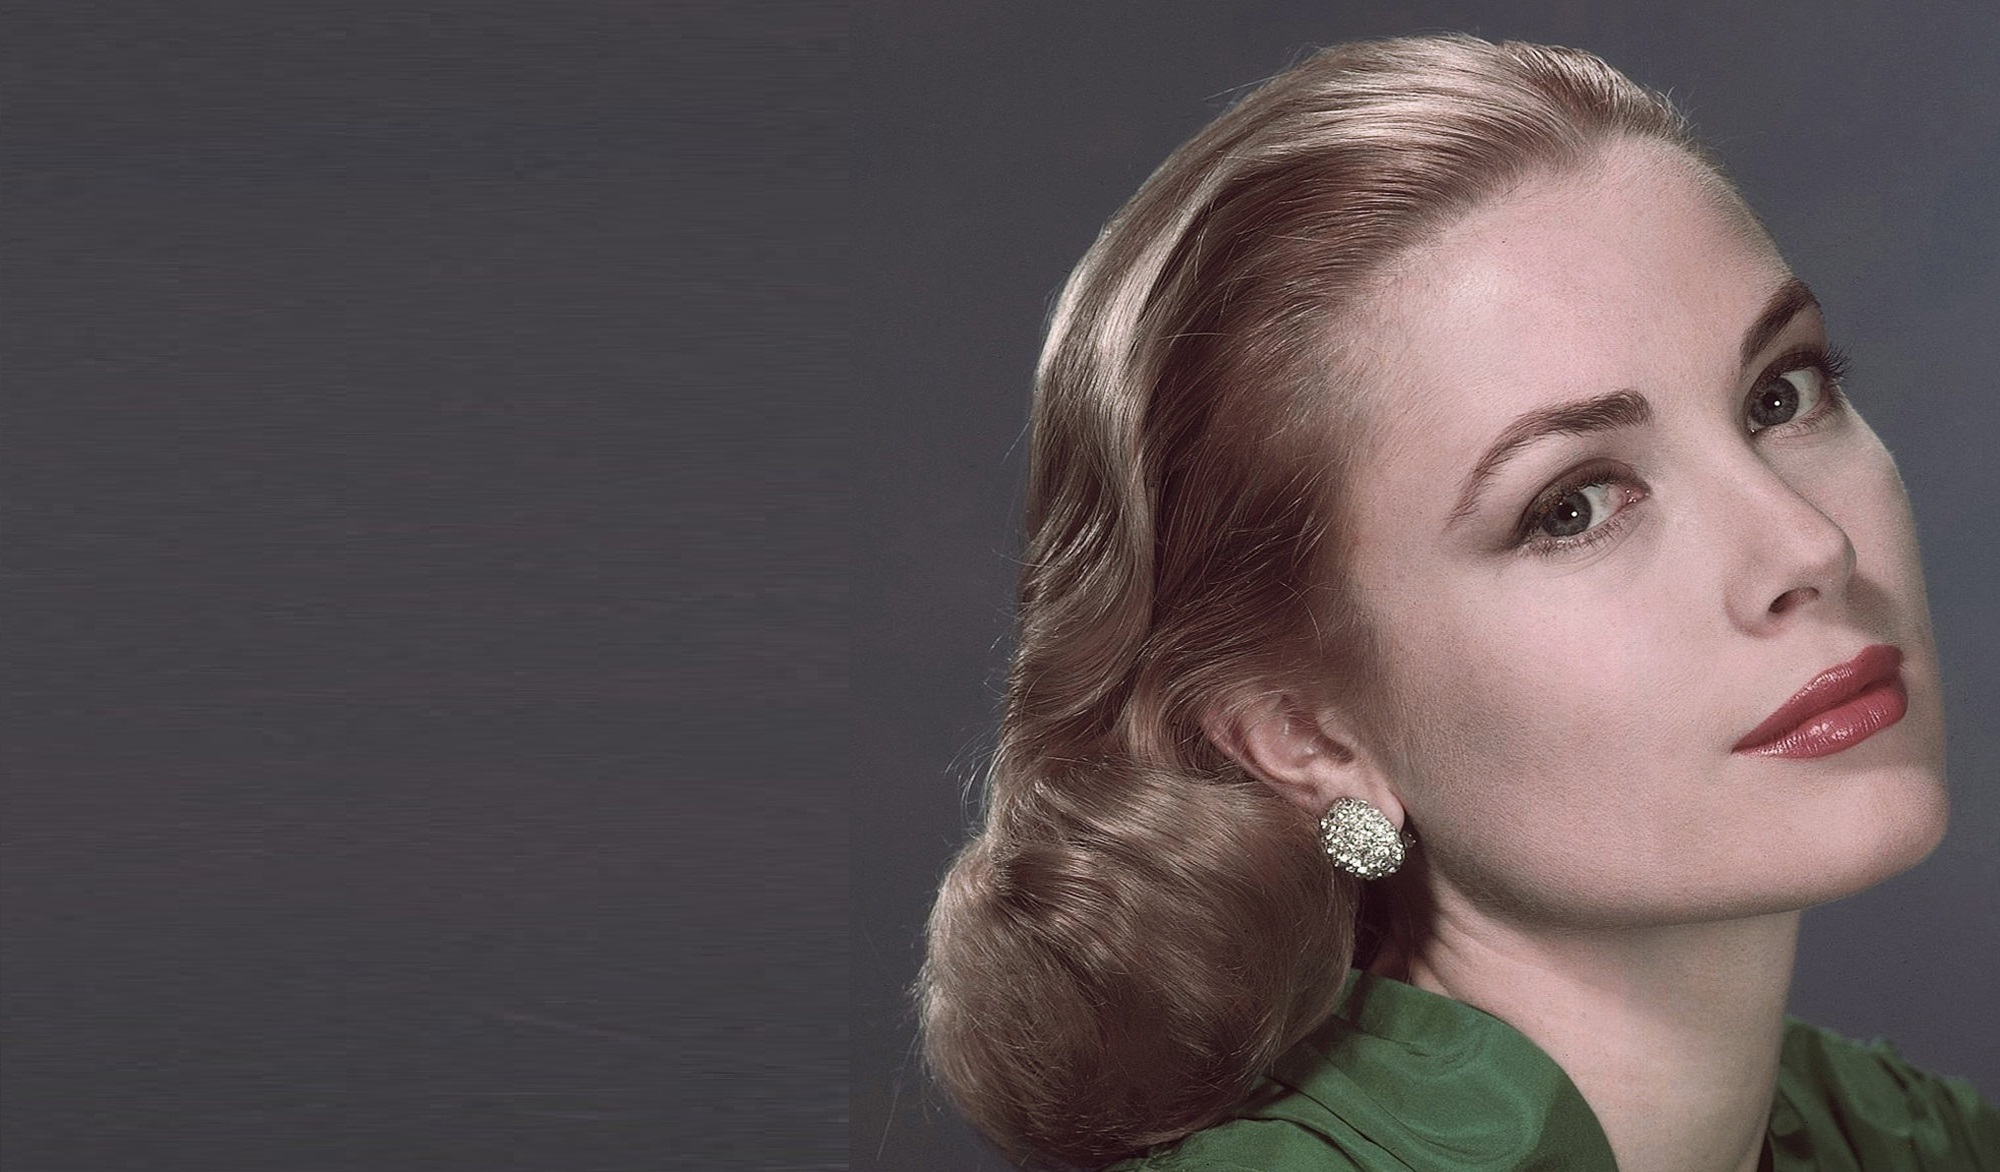 This undated file photo shows Grace Kelly. An exhibit on Kelly